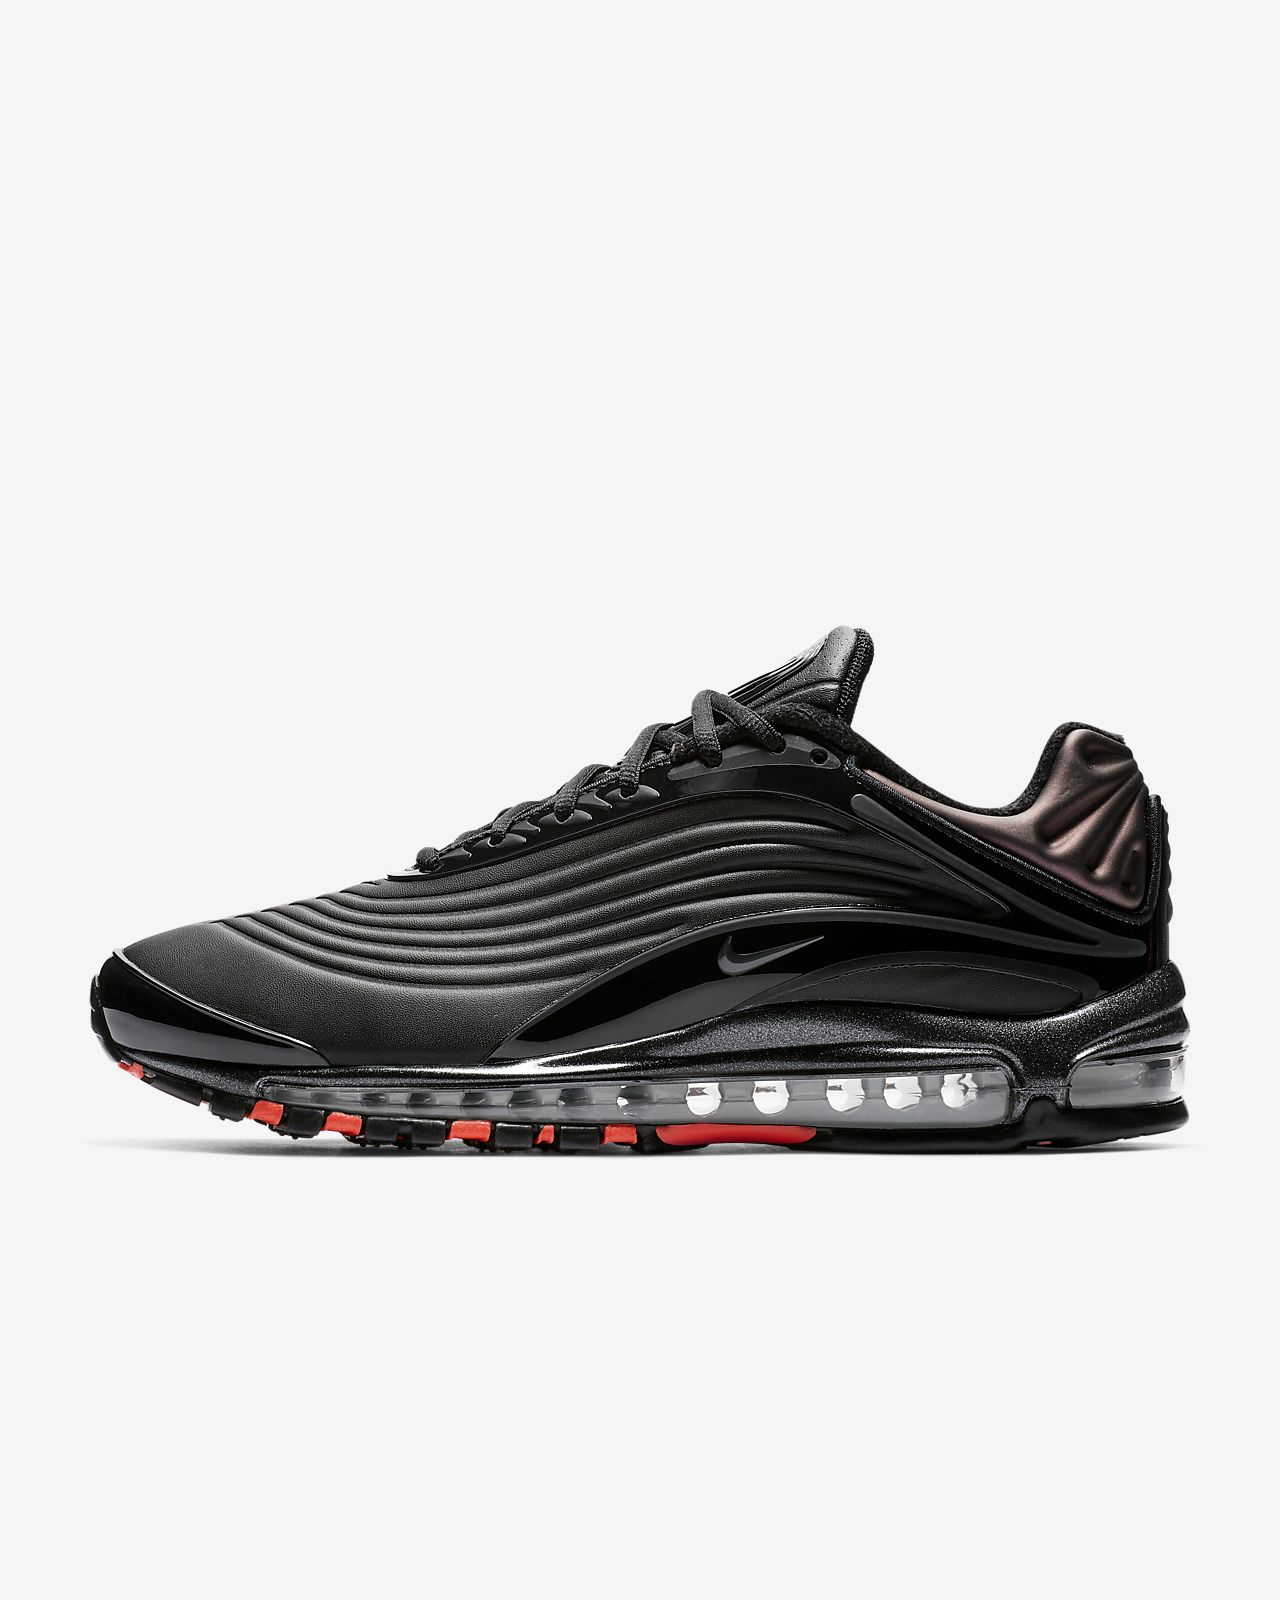 37004fd048d nike zoom 2k homme chaussure Chaussure Nike Air Max Deluxe SE pour Homme. FR